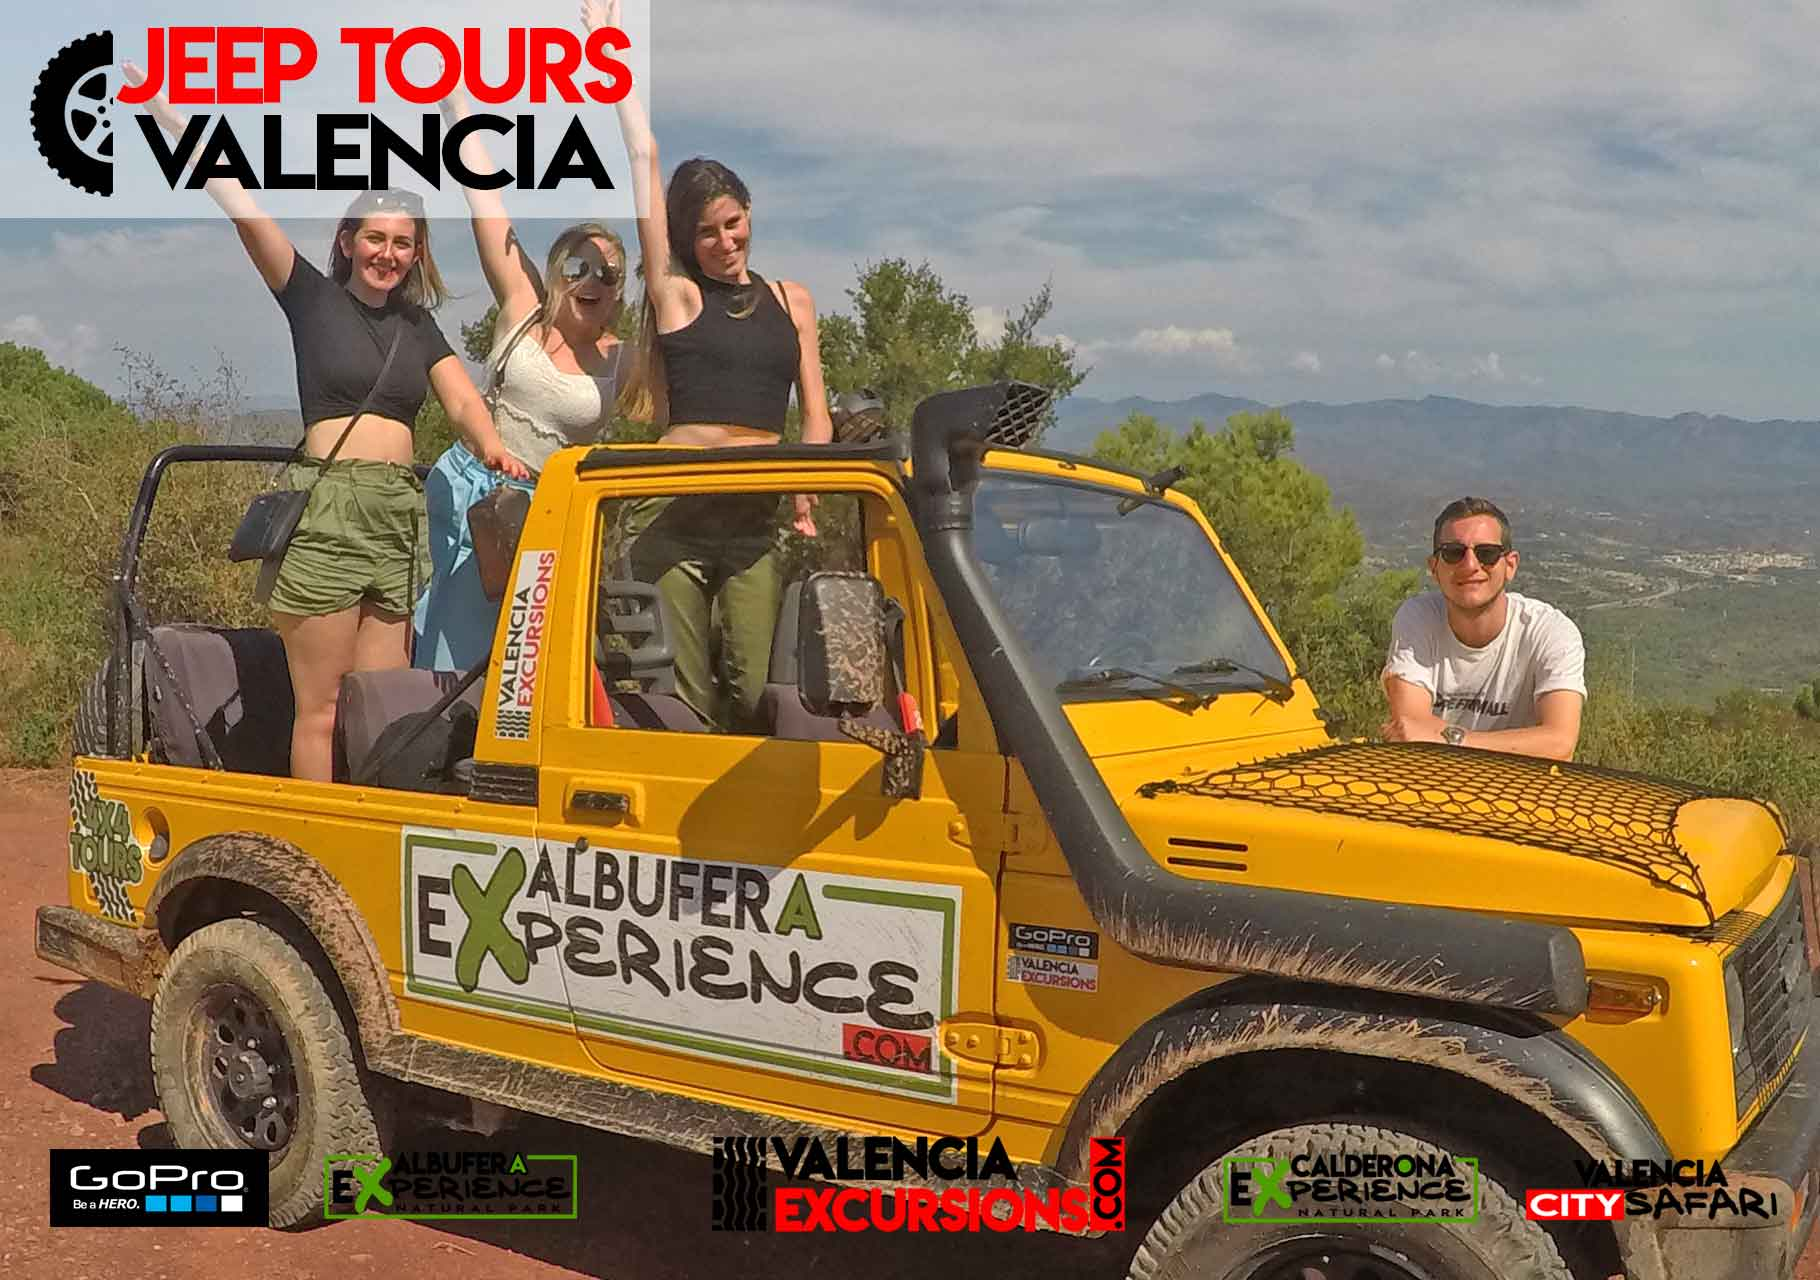 Albufera jeep tour